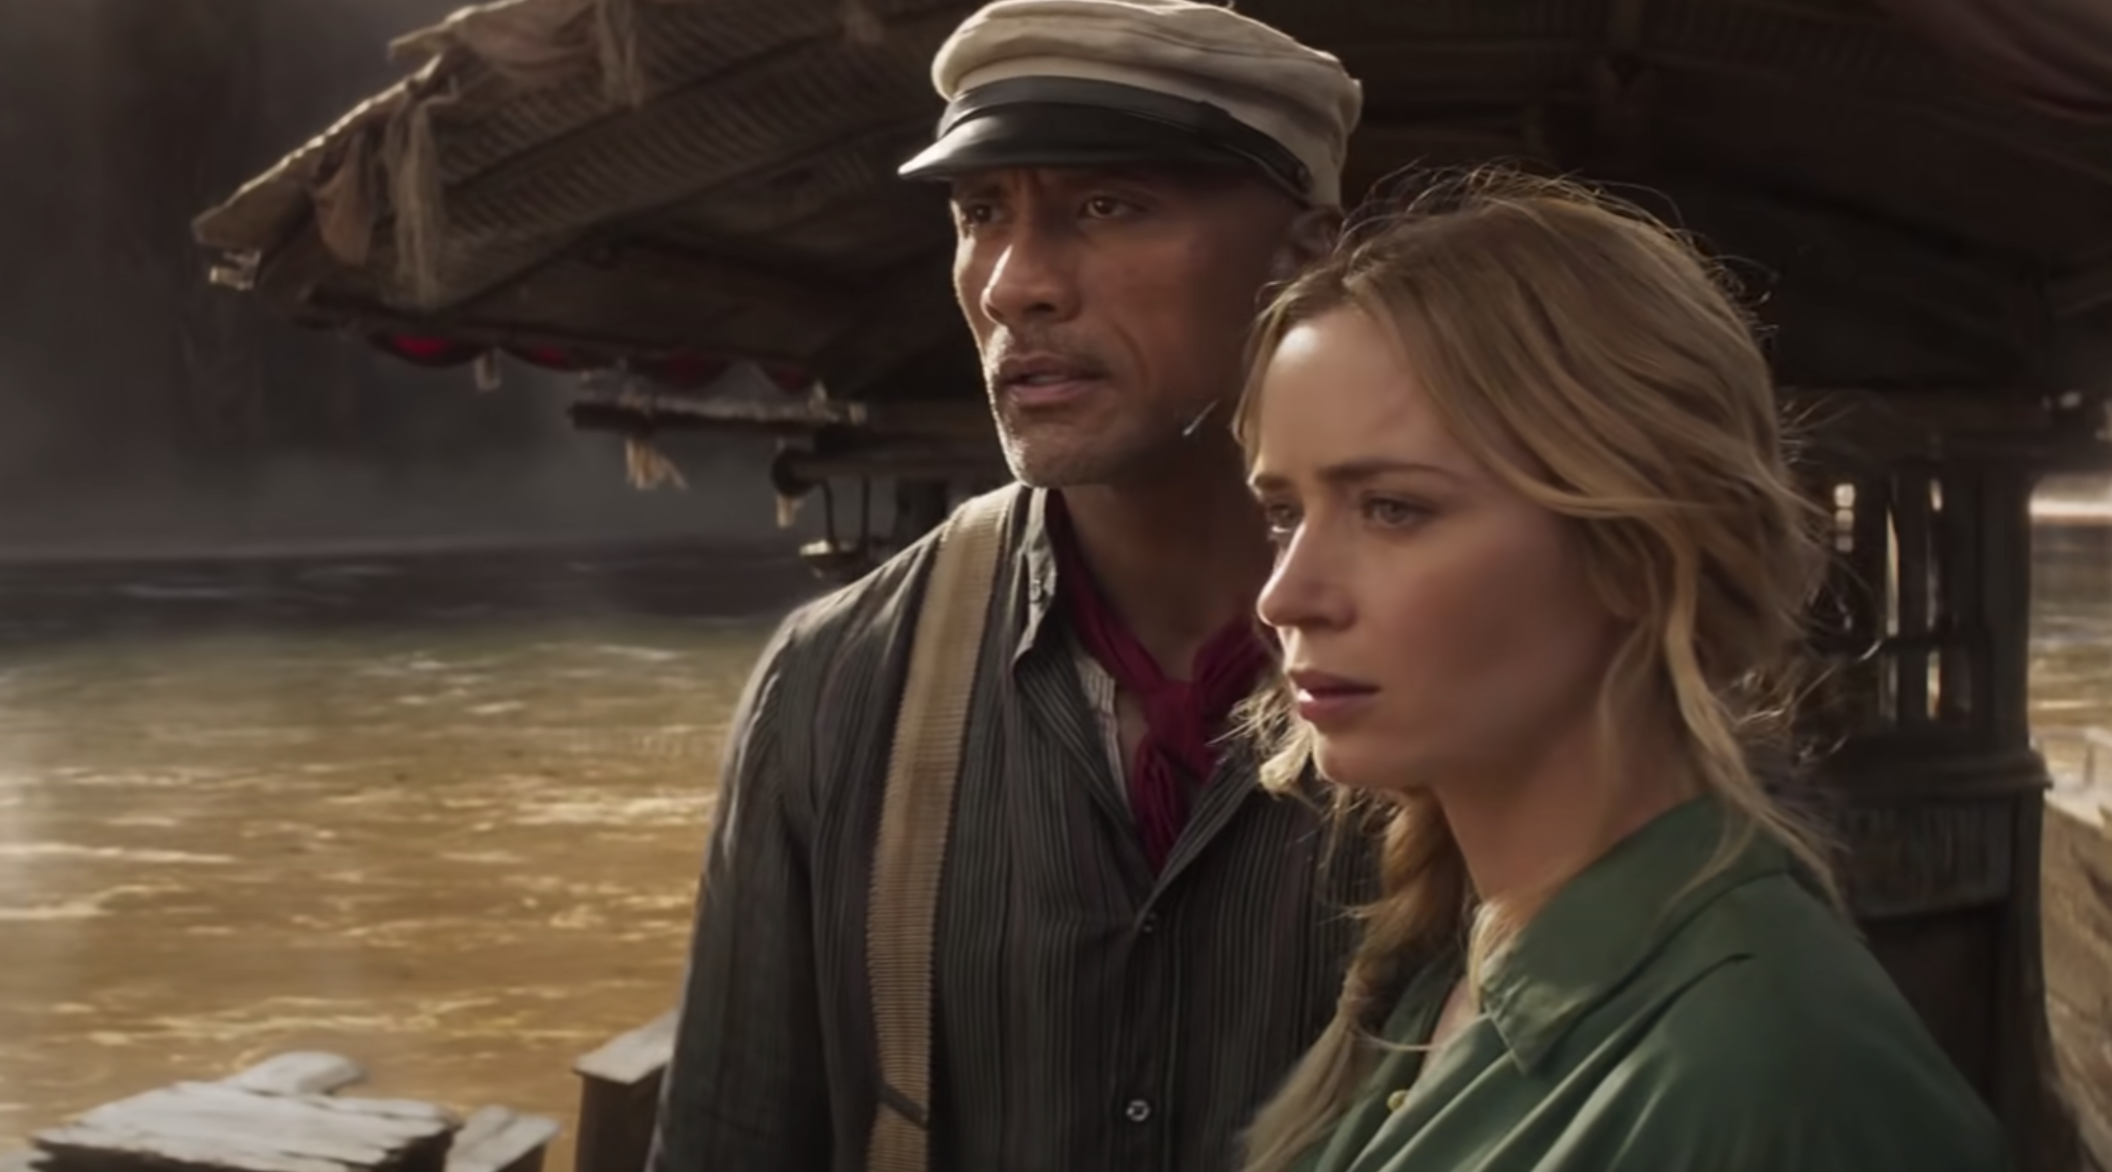 Lily and Frank looking ahead while standing next to each other on the boat